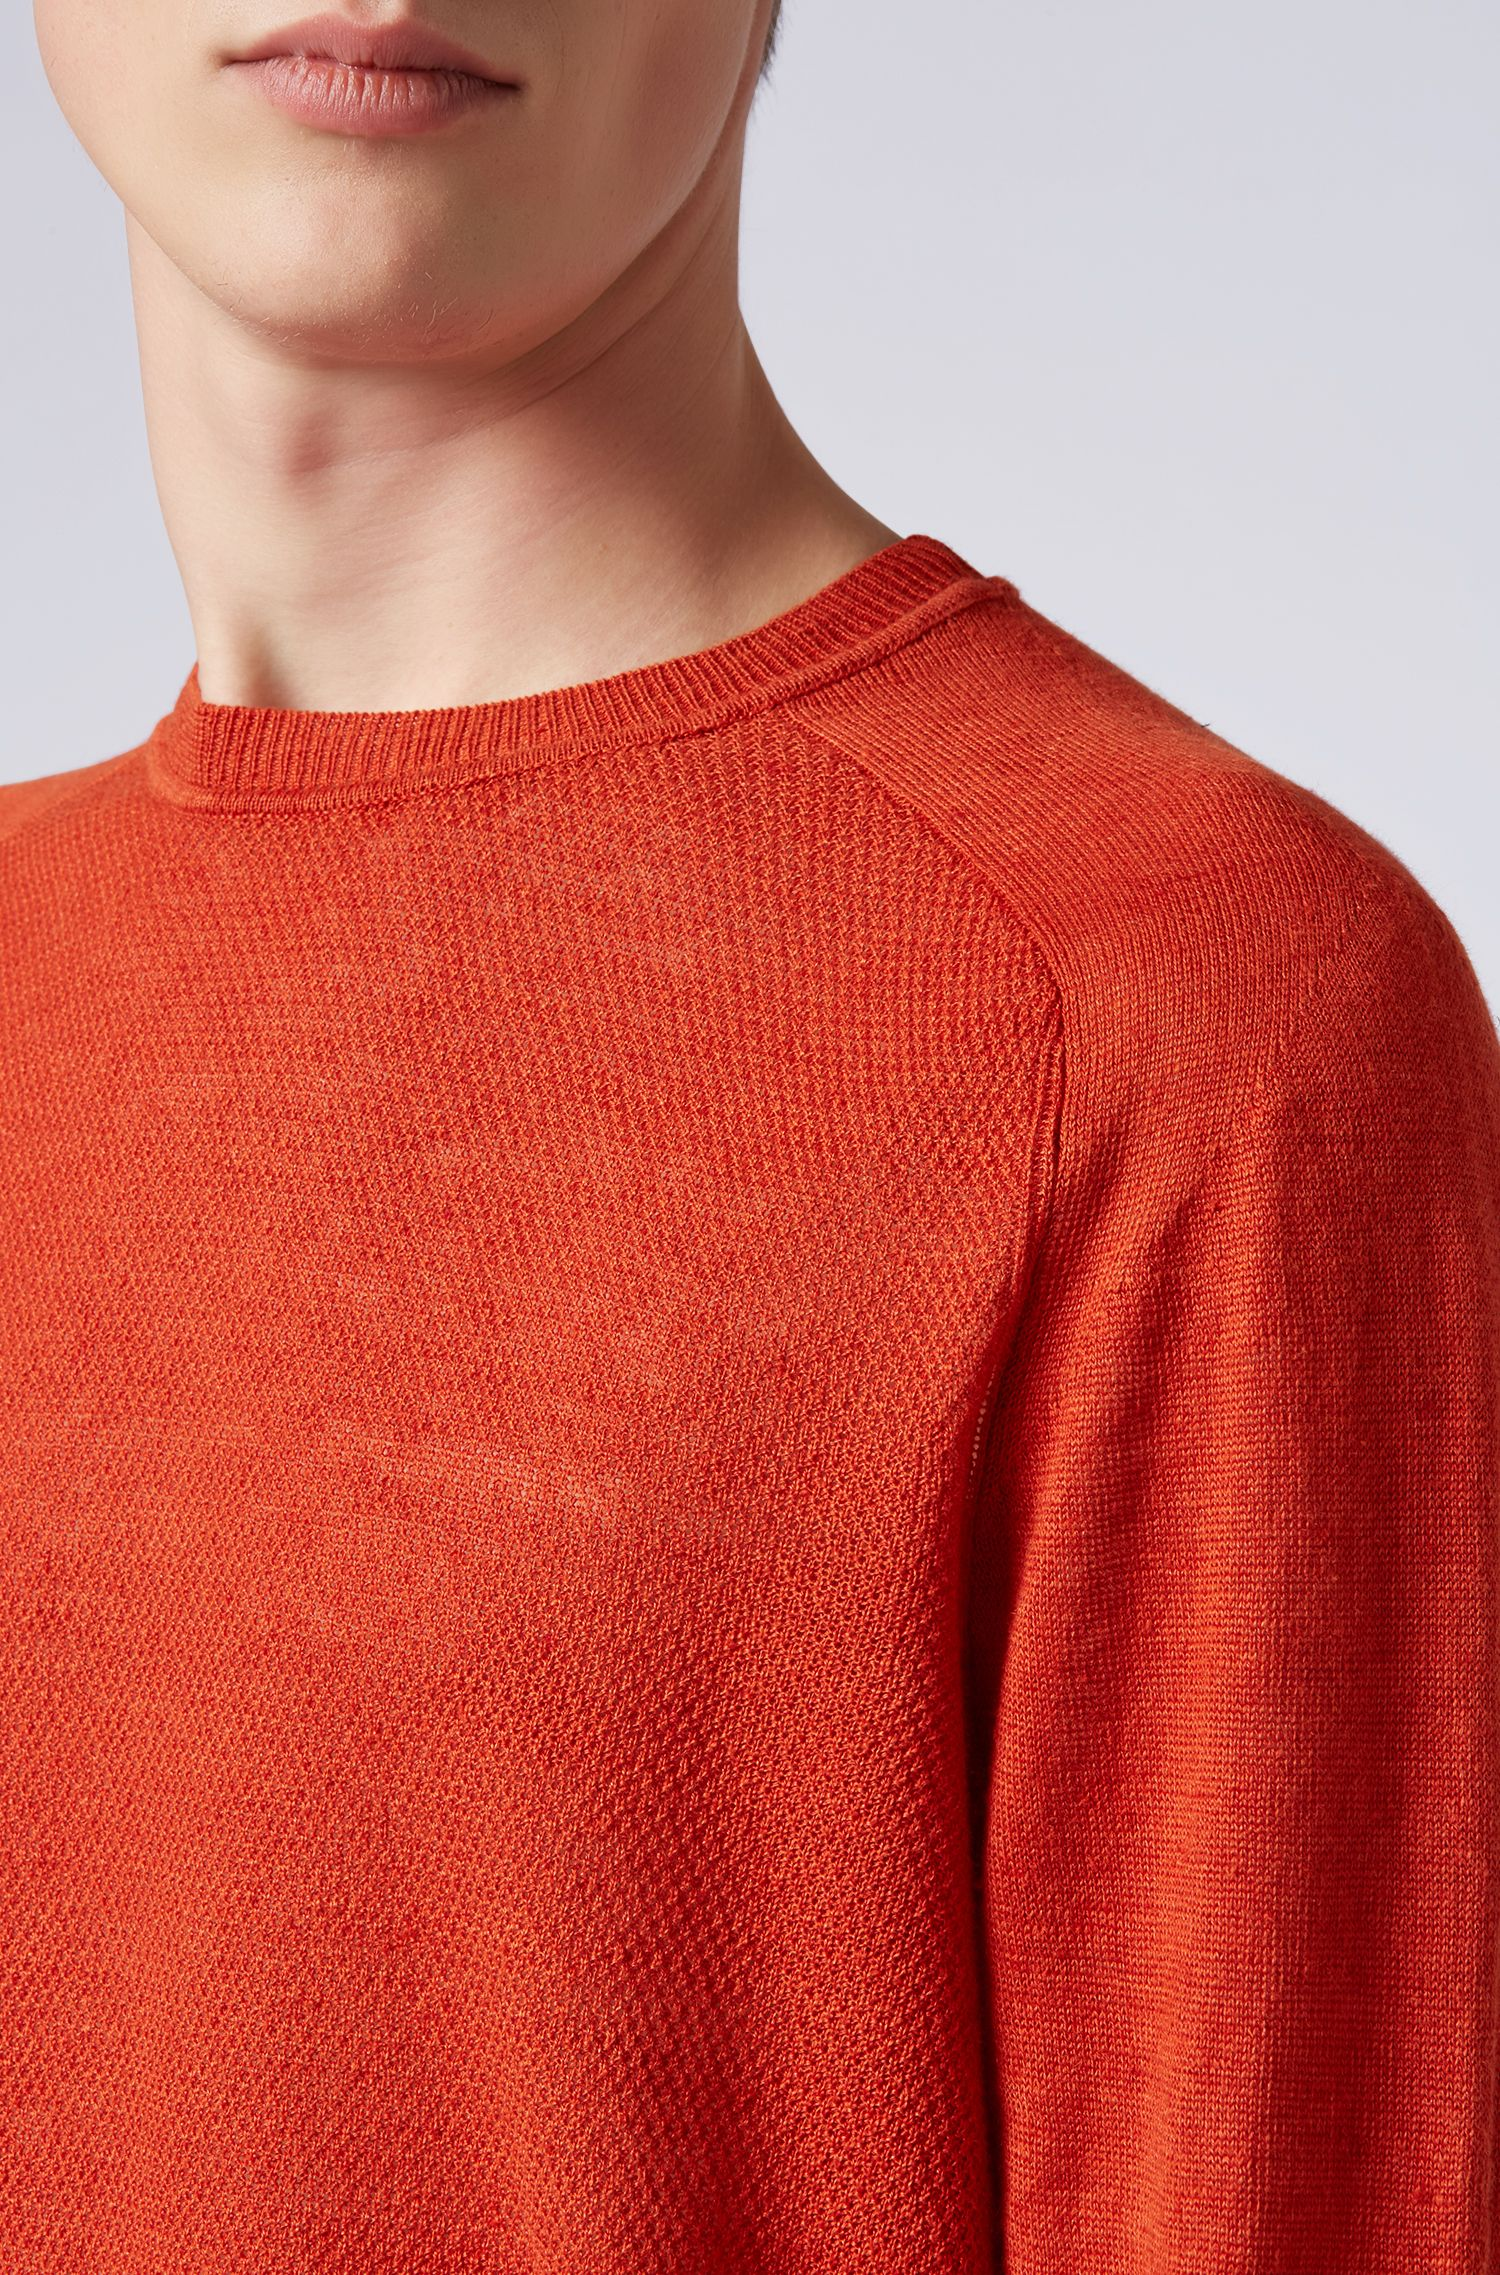 Micro-structured sweater in melange linen with ottoman detailing, Dark Orange